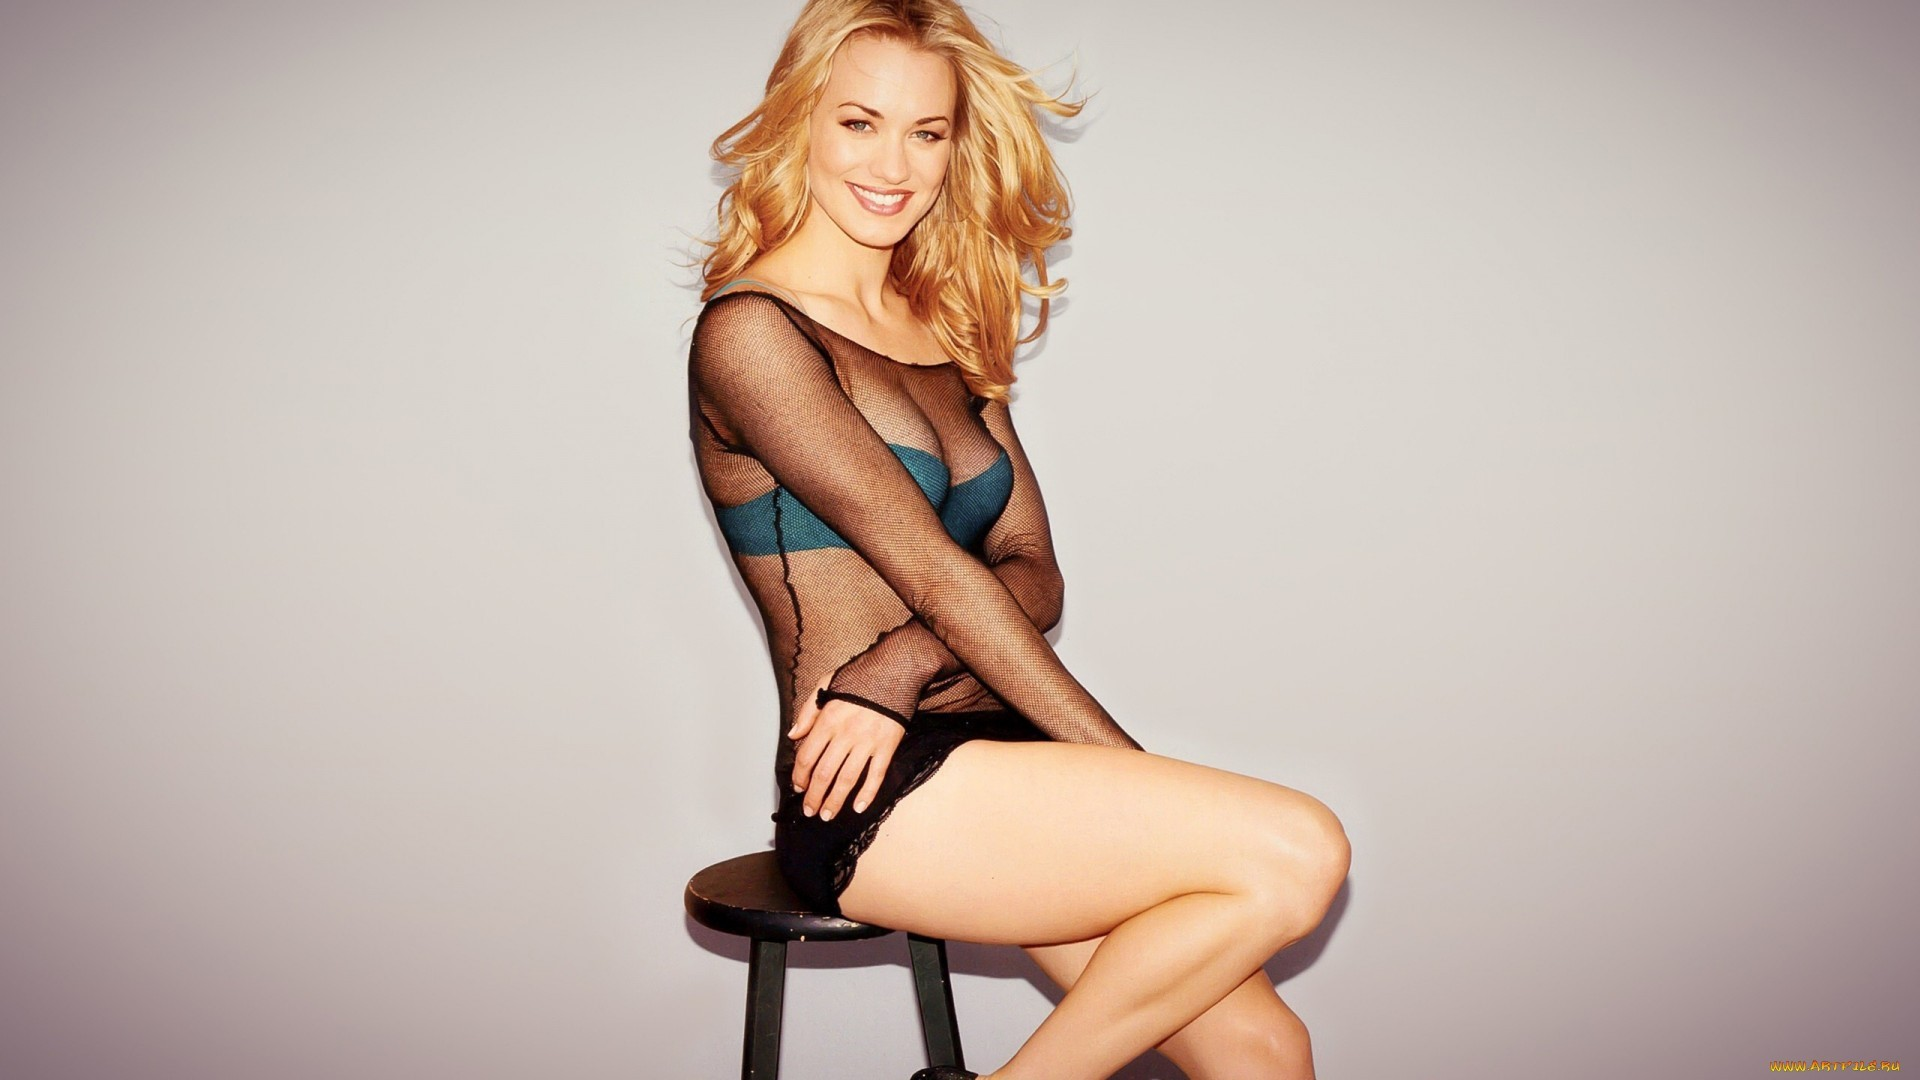 Yvonne Strahovski Wallpapers for Laptop